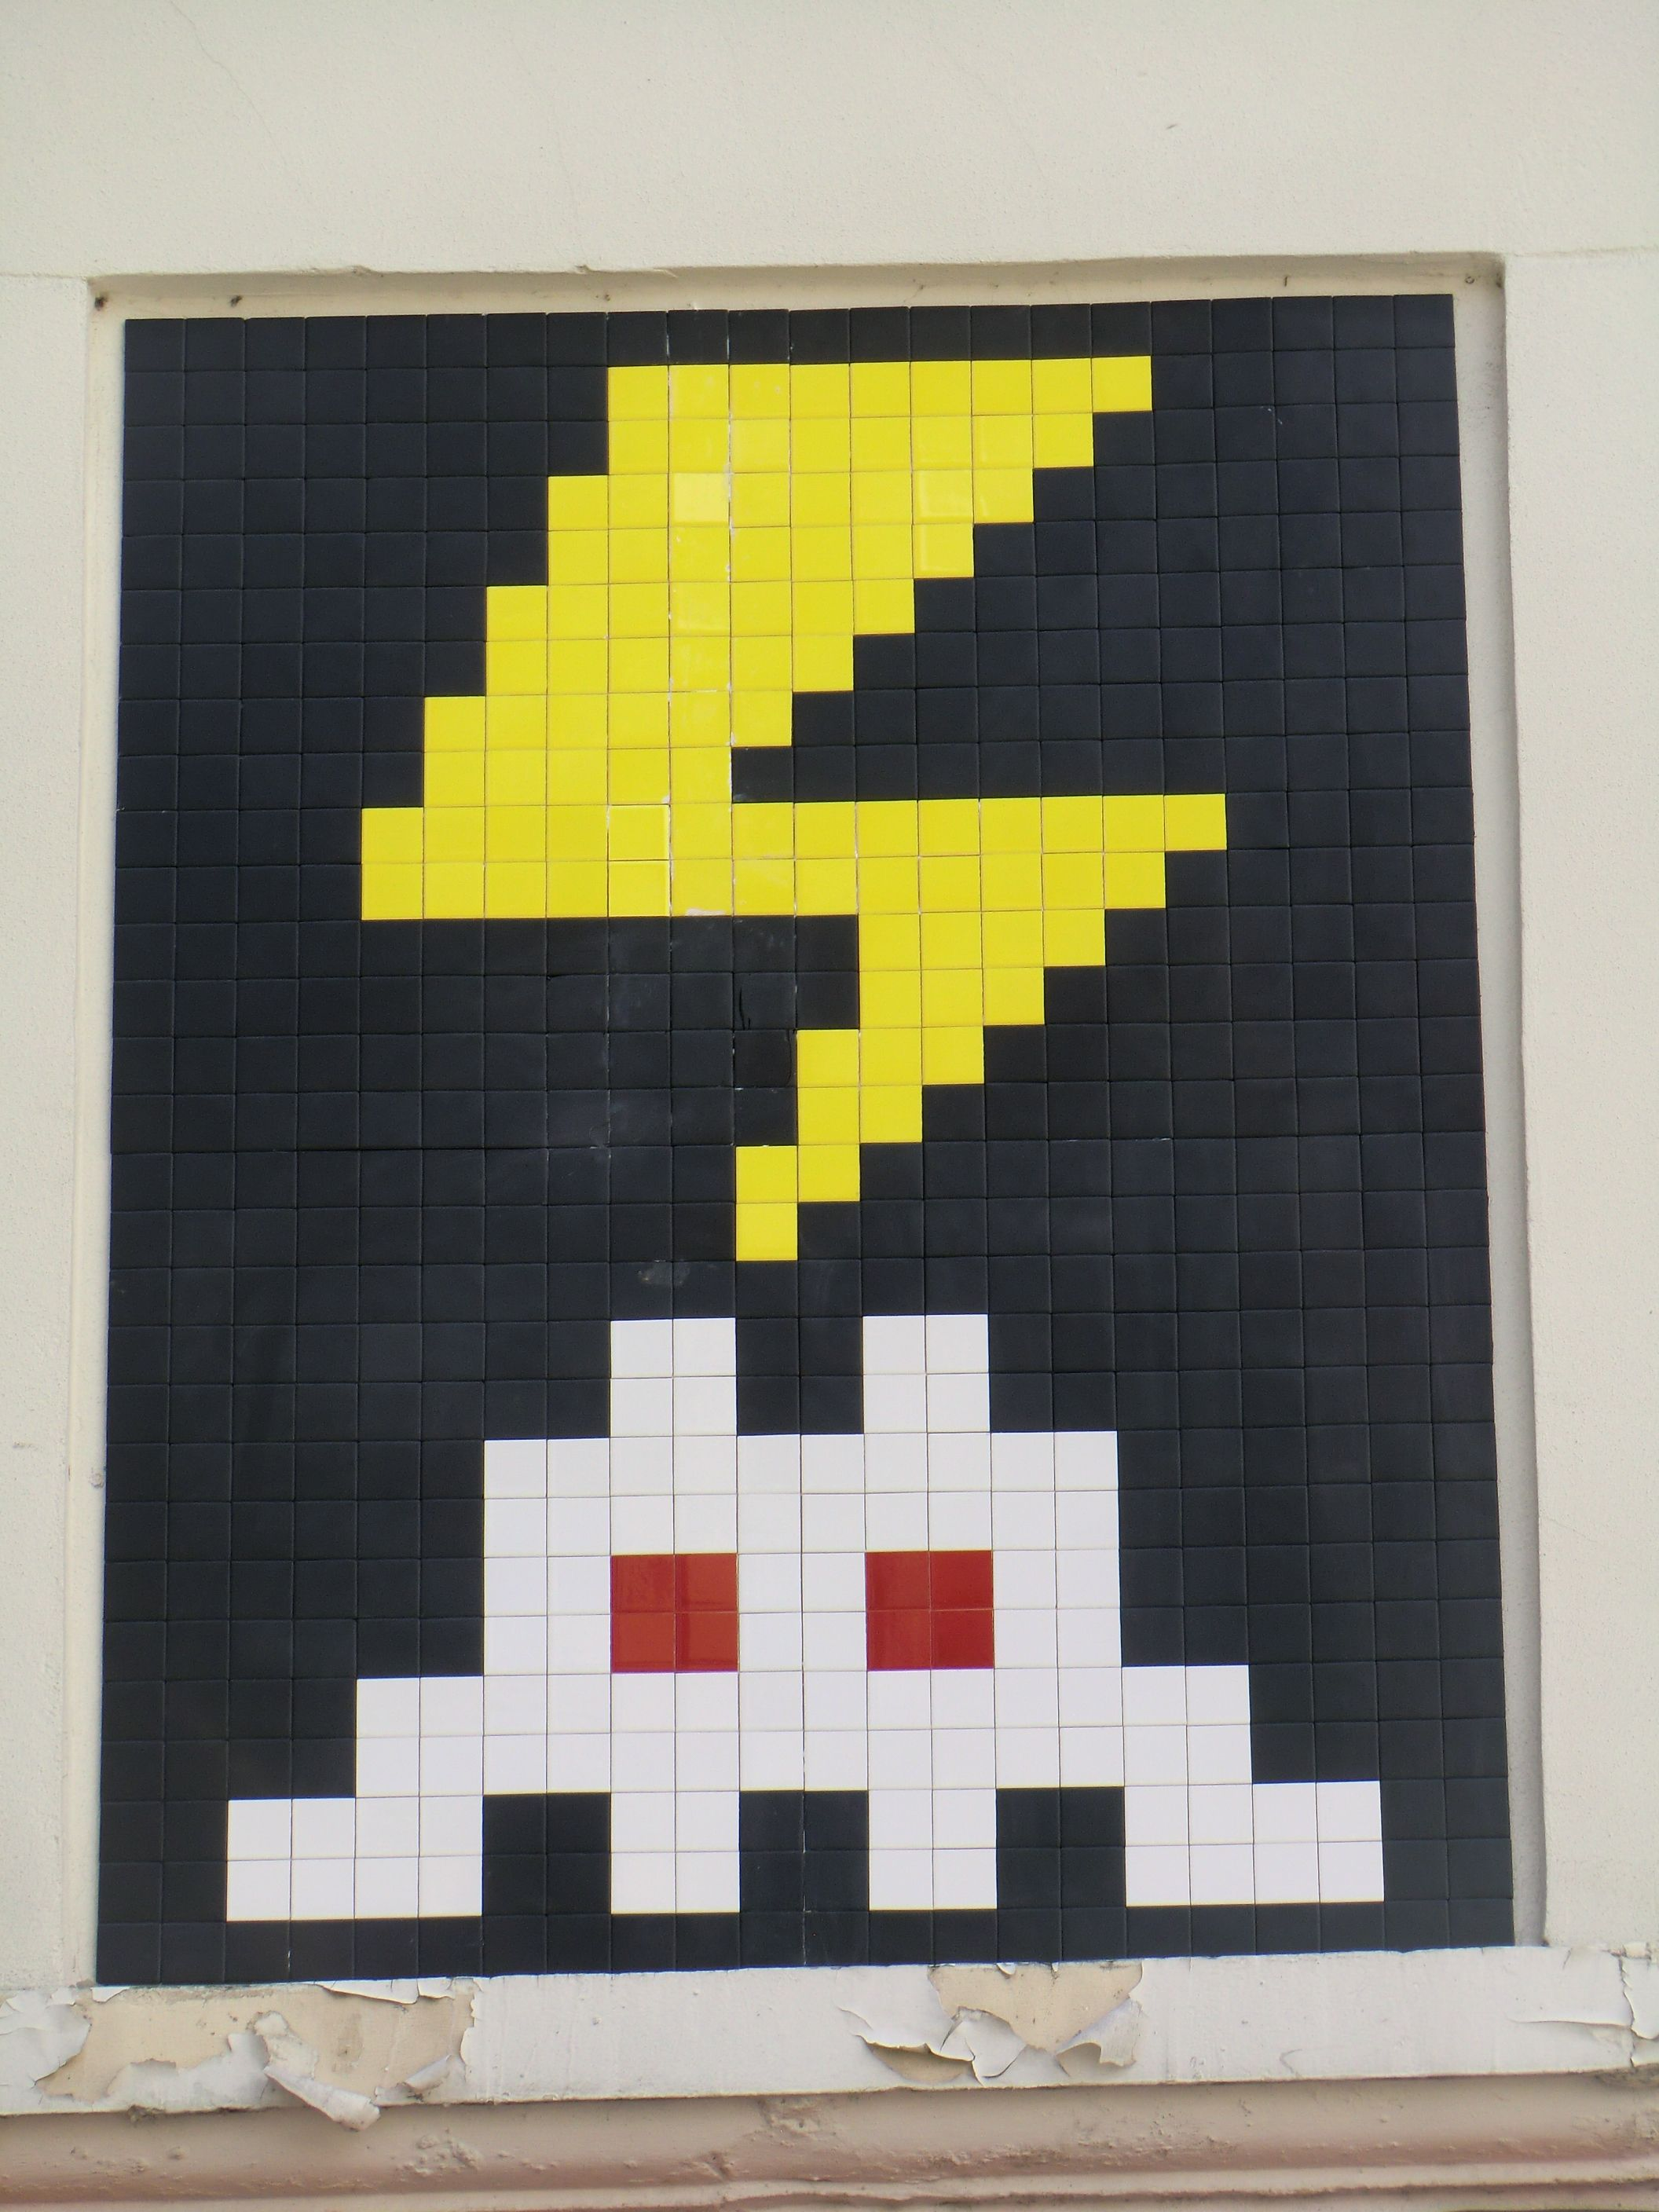 Amazing Space Invaders Wall Art Crest - Art & Wall Decor - hecatalog ...